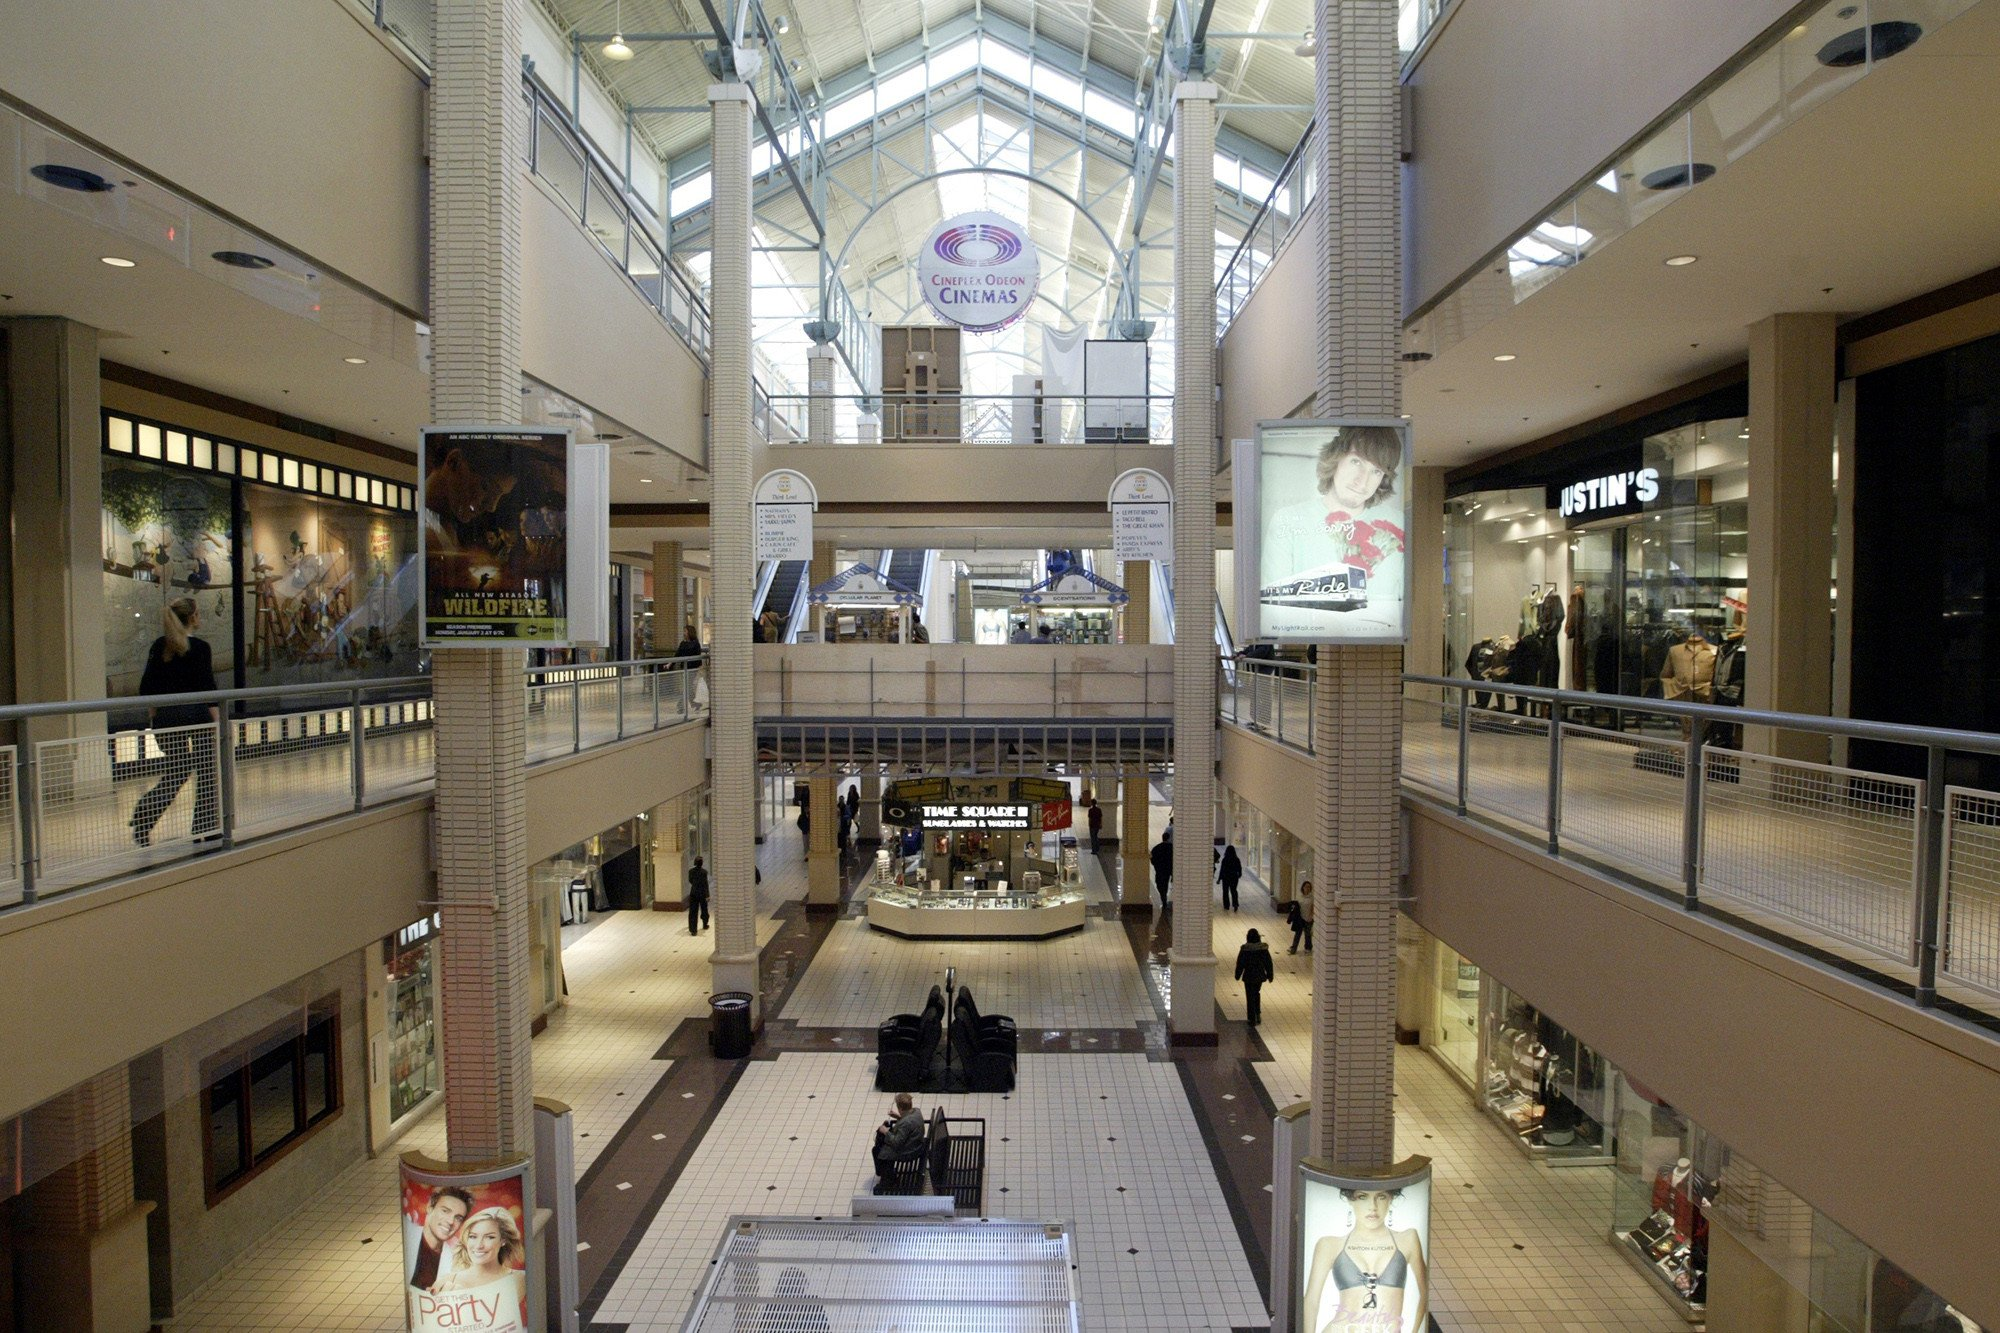 3 people shot in New Jersey shopping mall